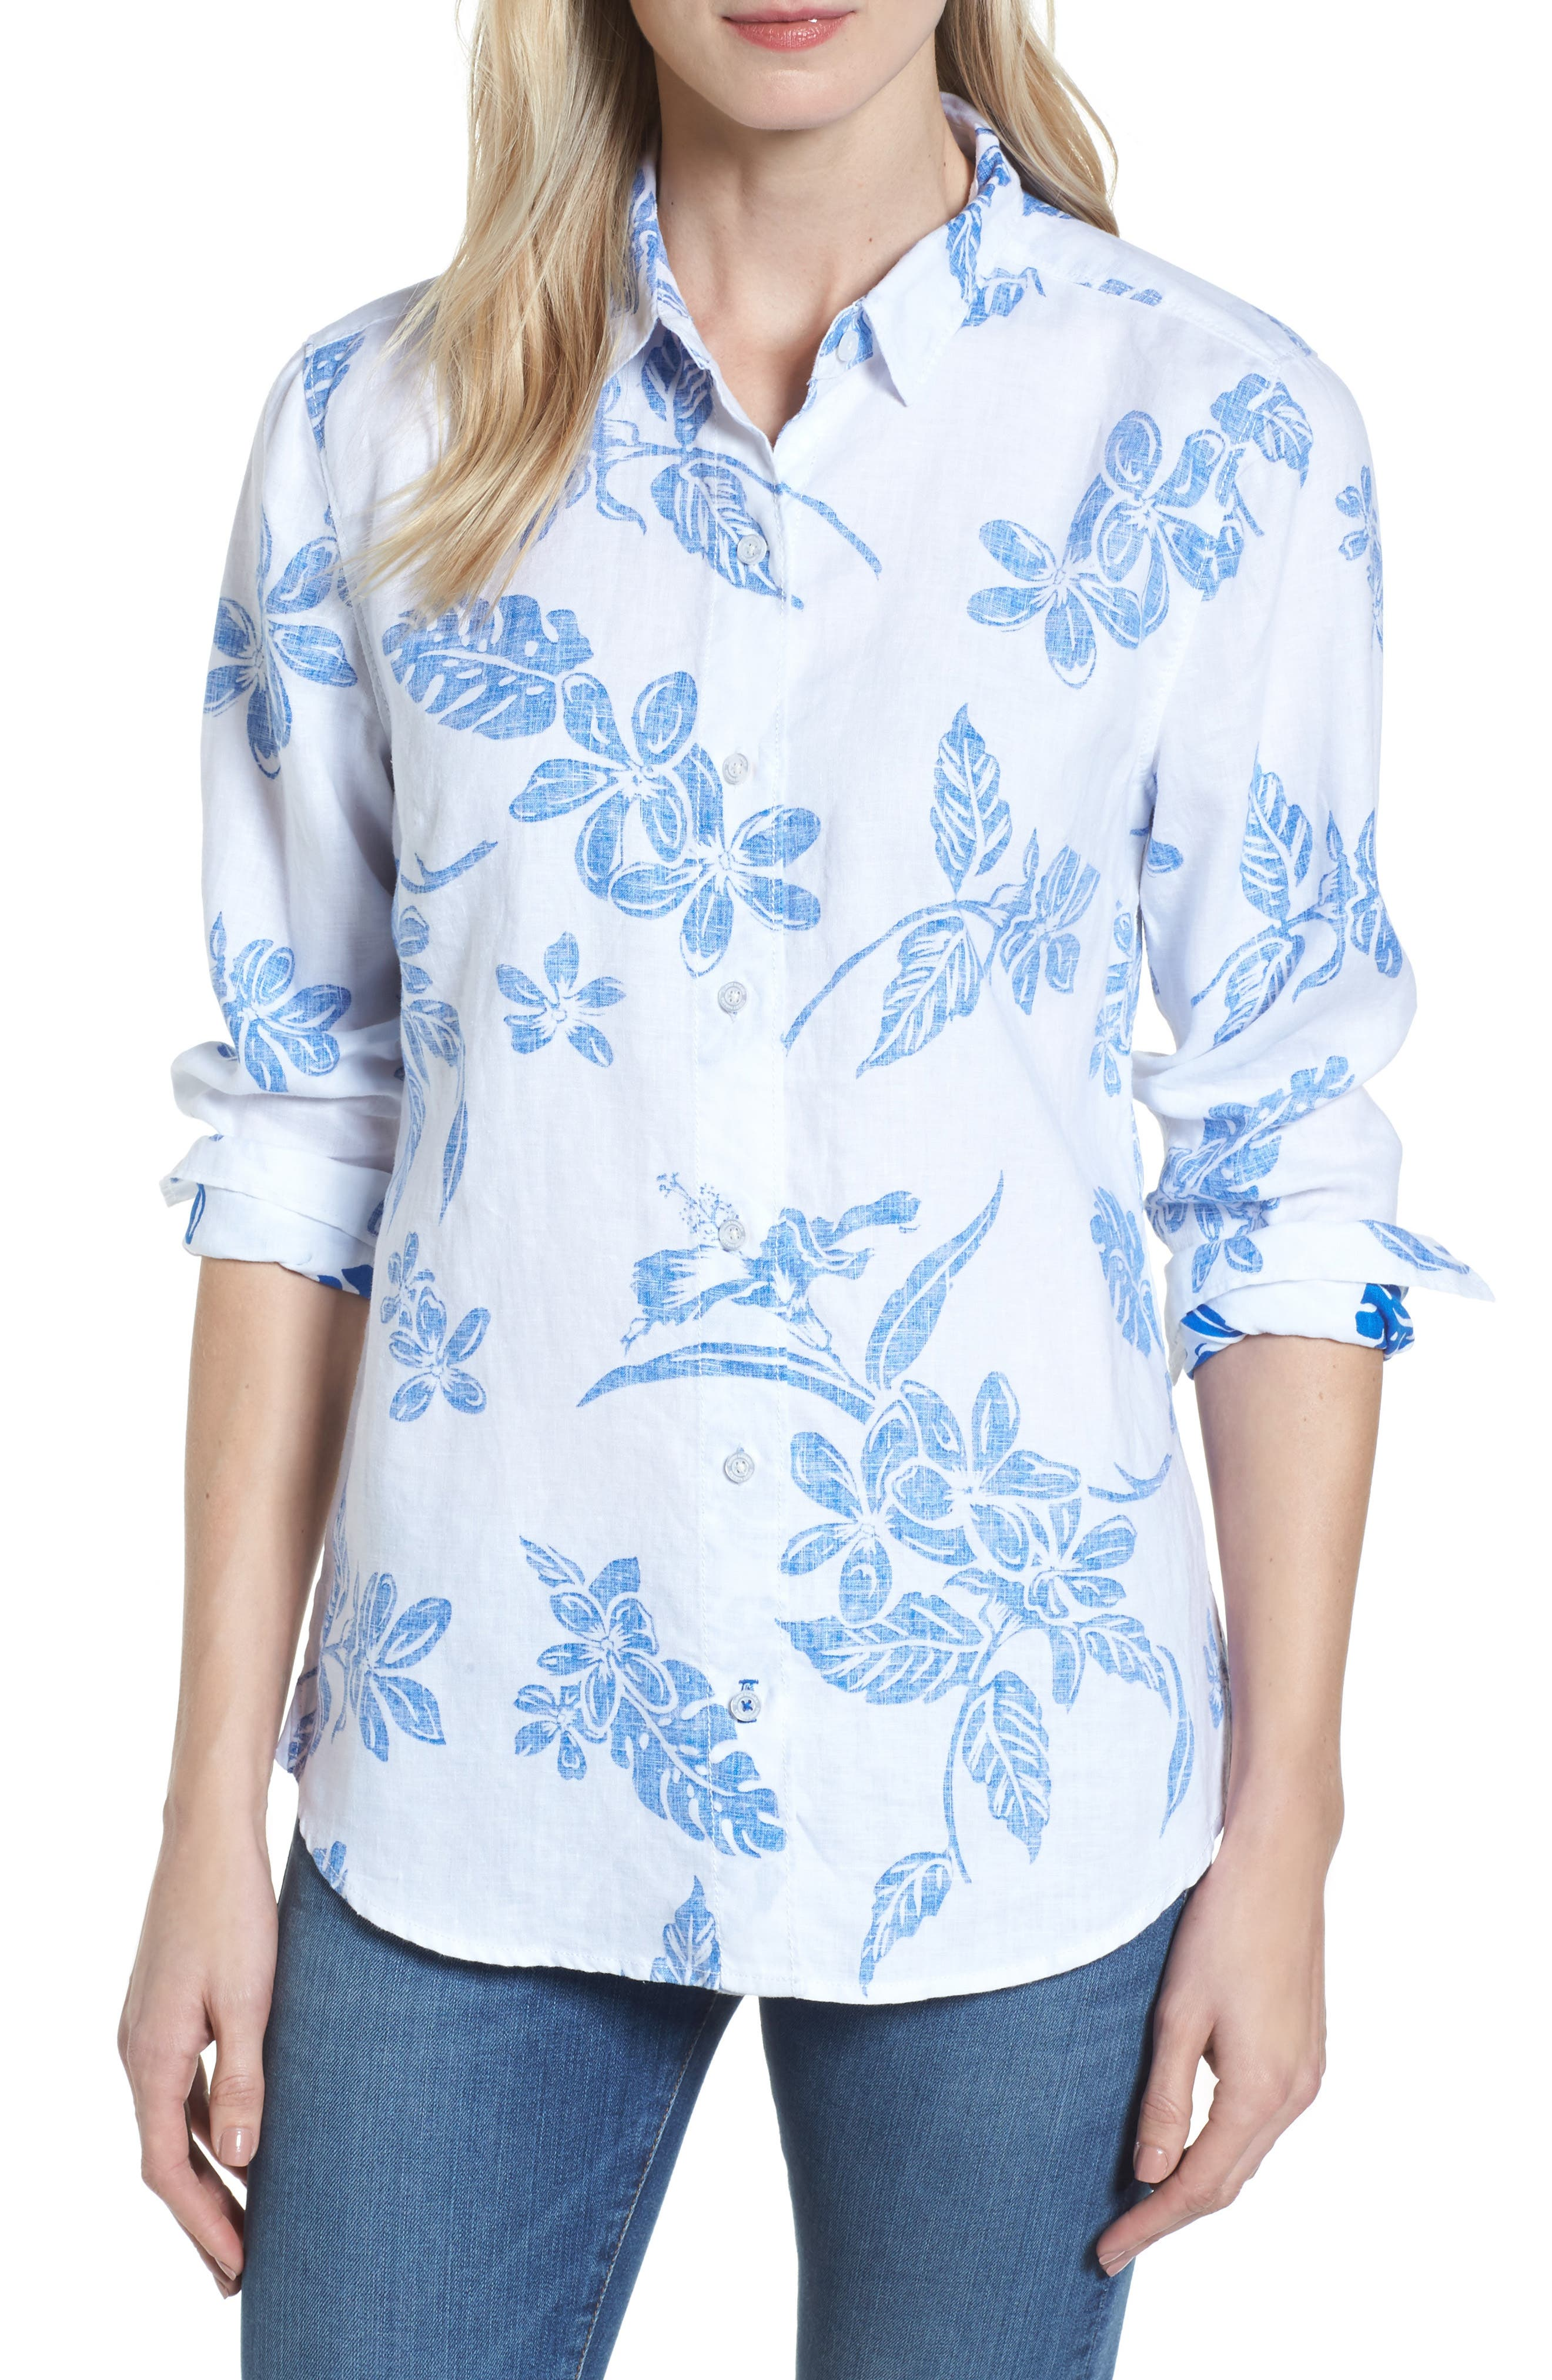 Hibiscus Hiatus Long Sleeve Top,                         Main,                         color, White/ Cobalt